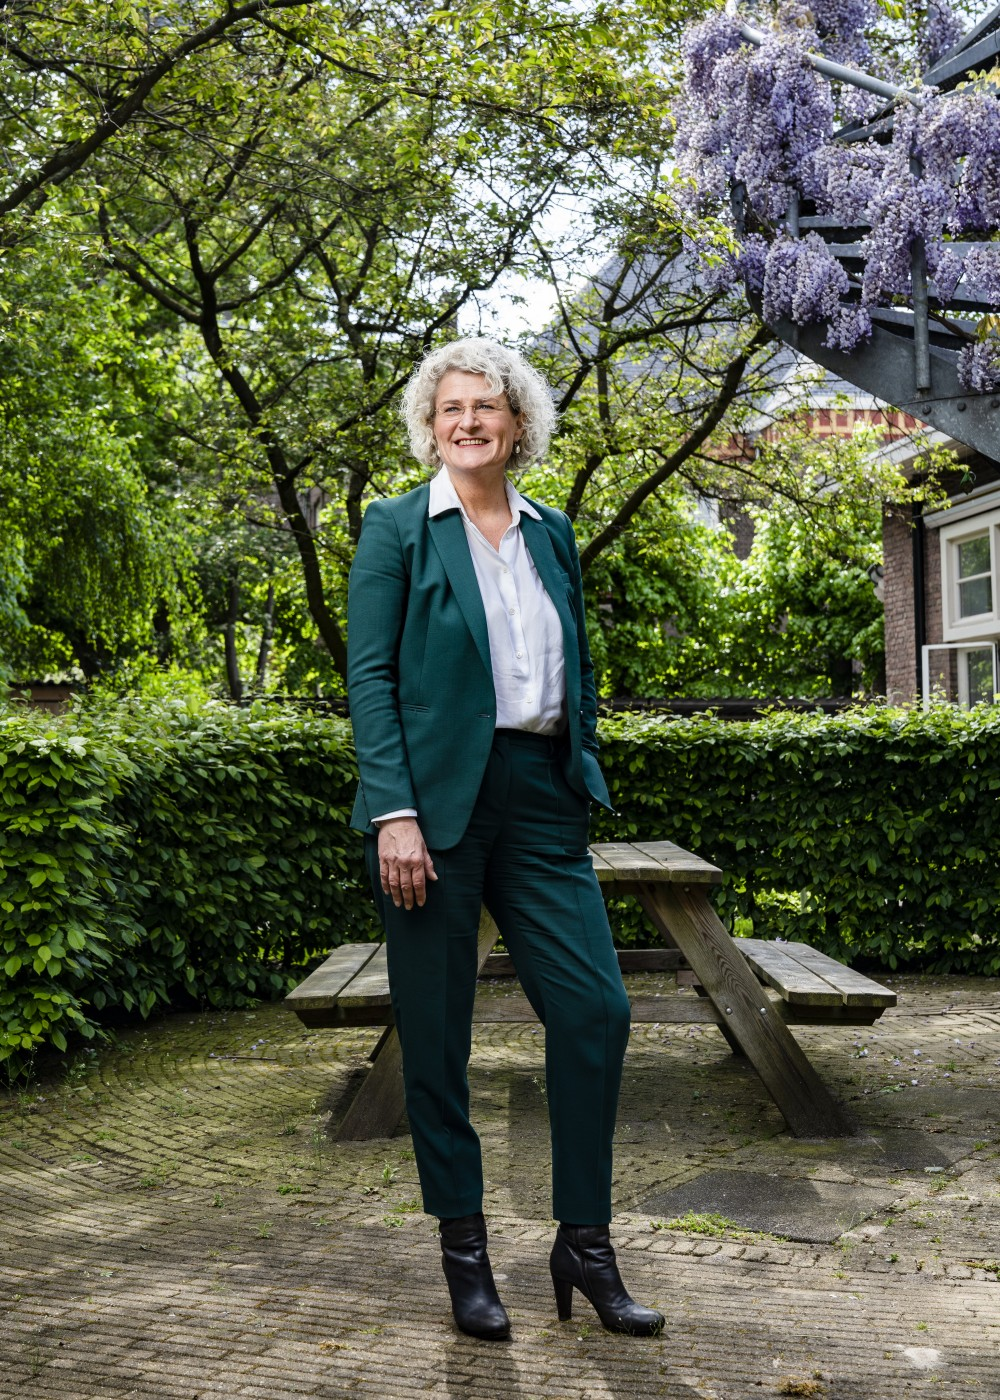 The Netherlands, Amsterdam, 09 May 2019. Portrait Doreen Boonekamp, director Dutch Film Fund. Photo: 31pictures.nl / Nederland, Amsterdam, 09 mei 2019. Portrait Doreen Boonekamp, directeur Nederlands Filmfonds. Foto: 31pictures.nl / (c) 2019, www.31pictures.nl